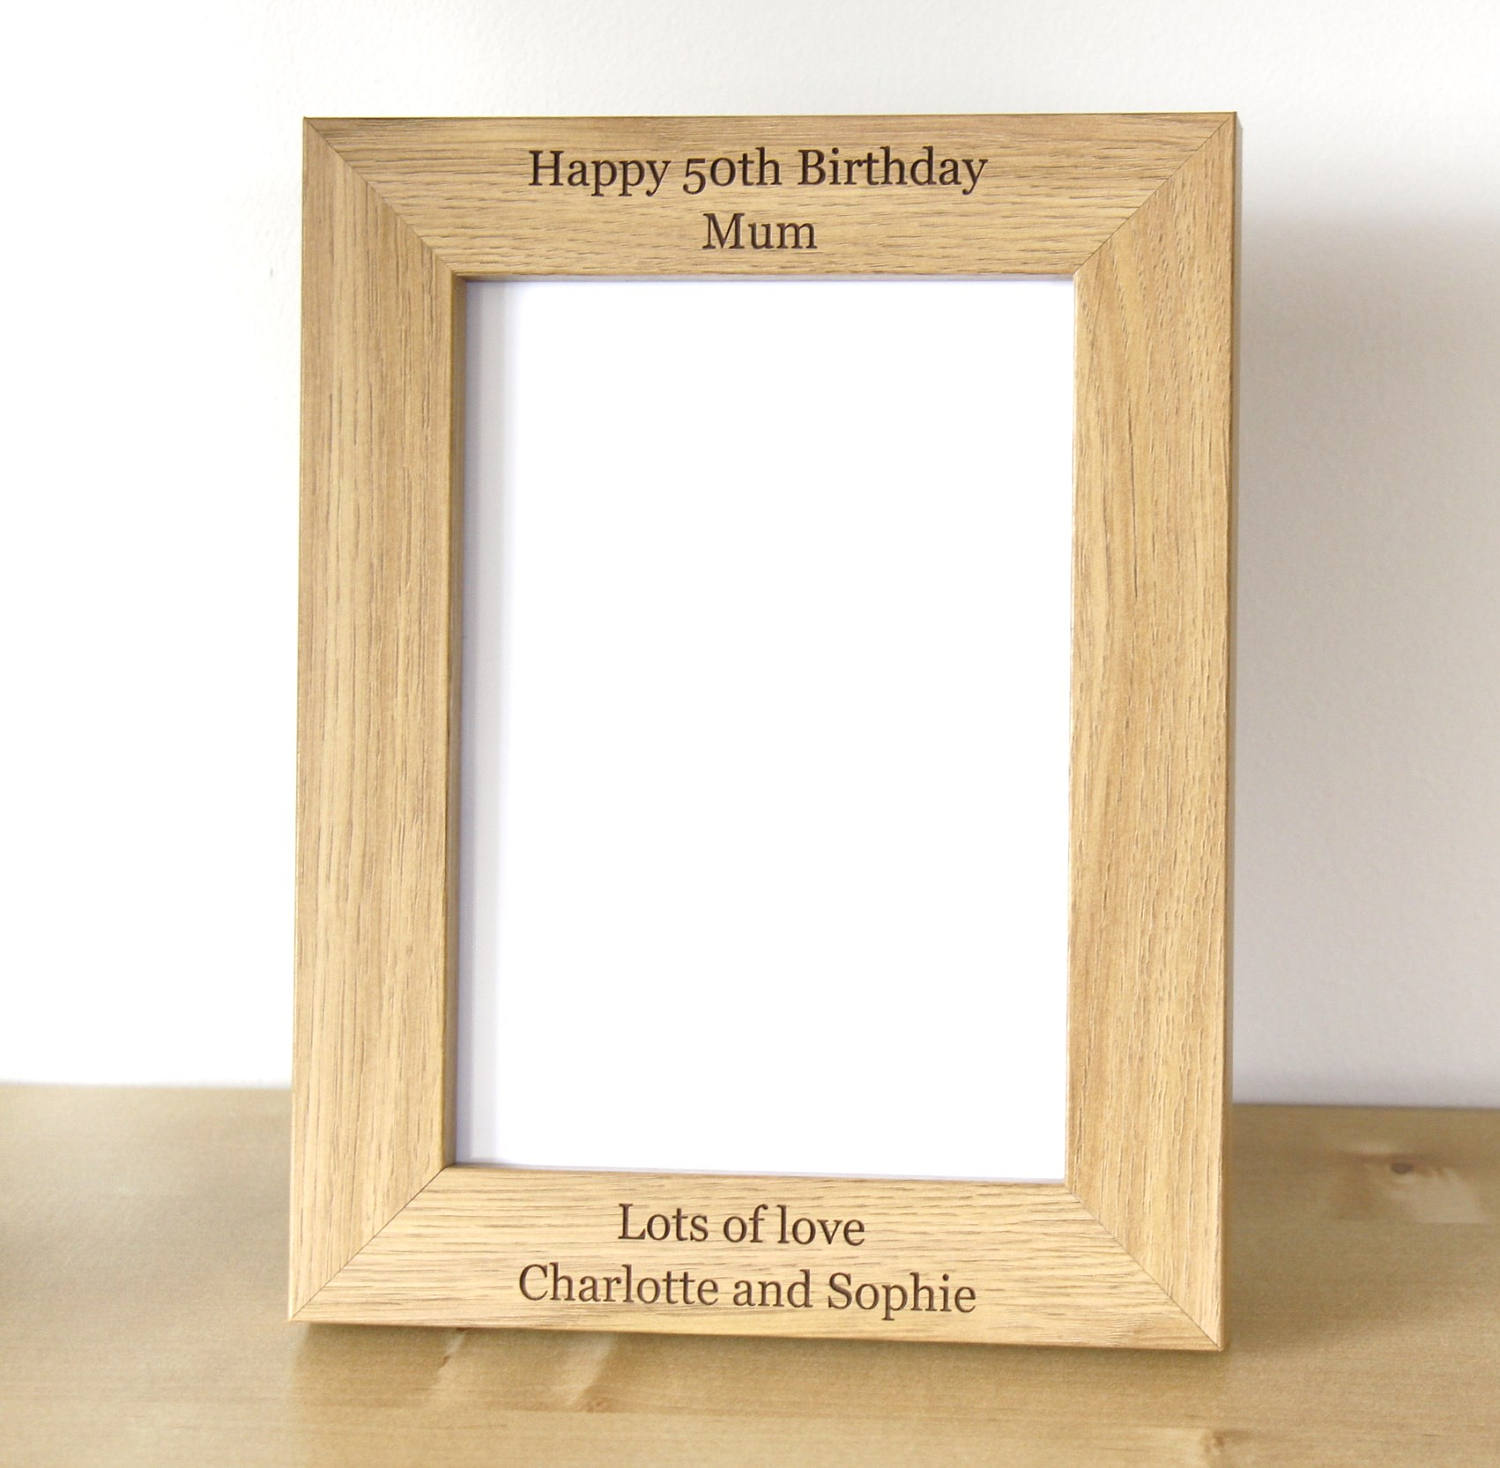 Personalised Photo Frame, Wooden Photo Frame